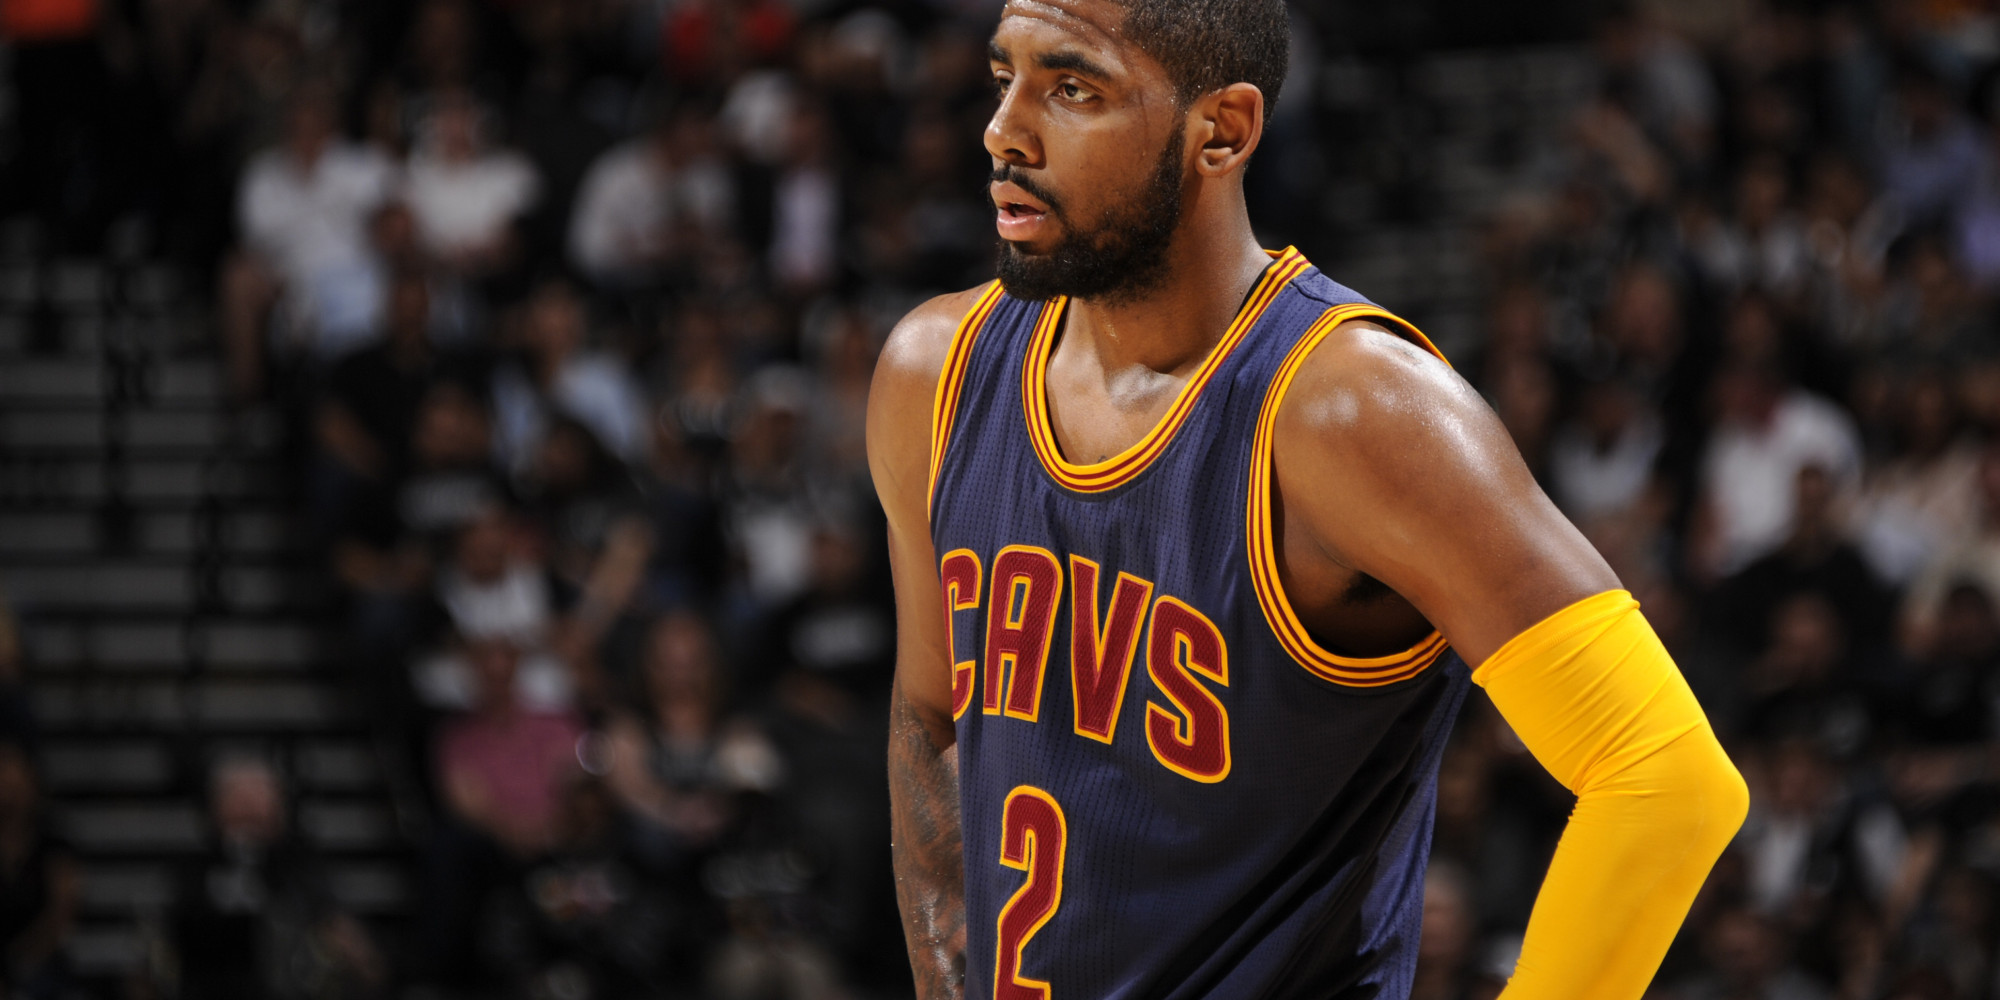 kyrie irving scores more points in a game than lebron ever